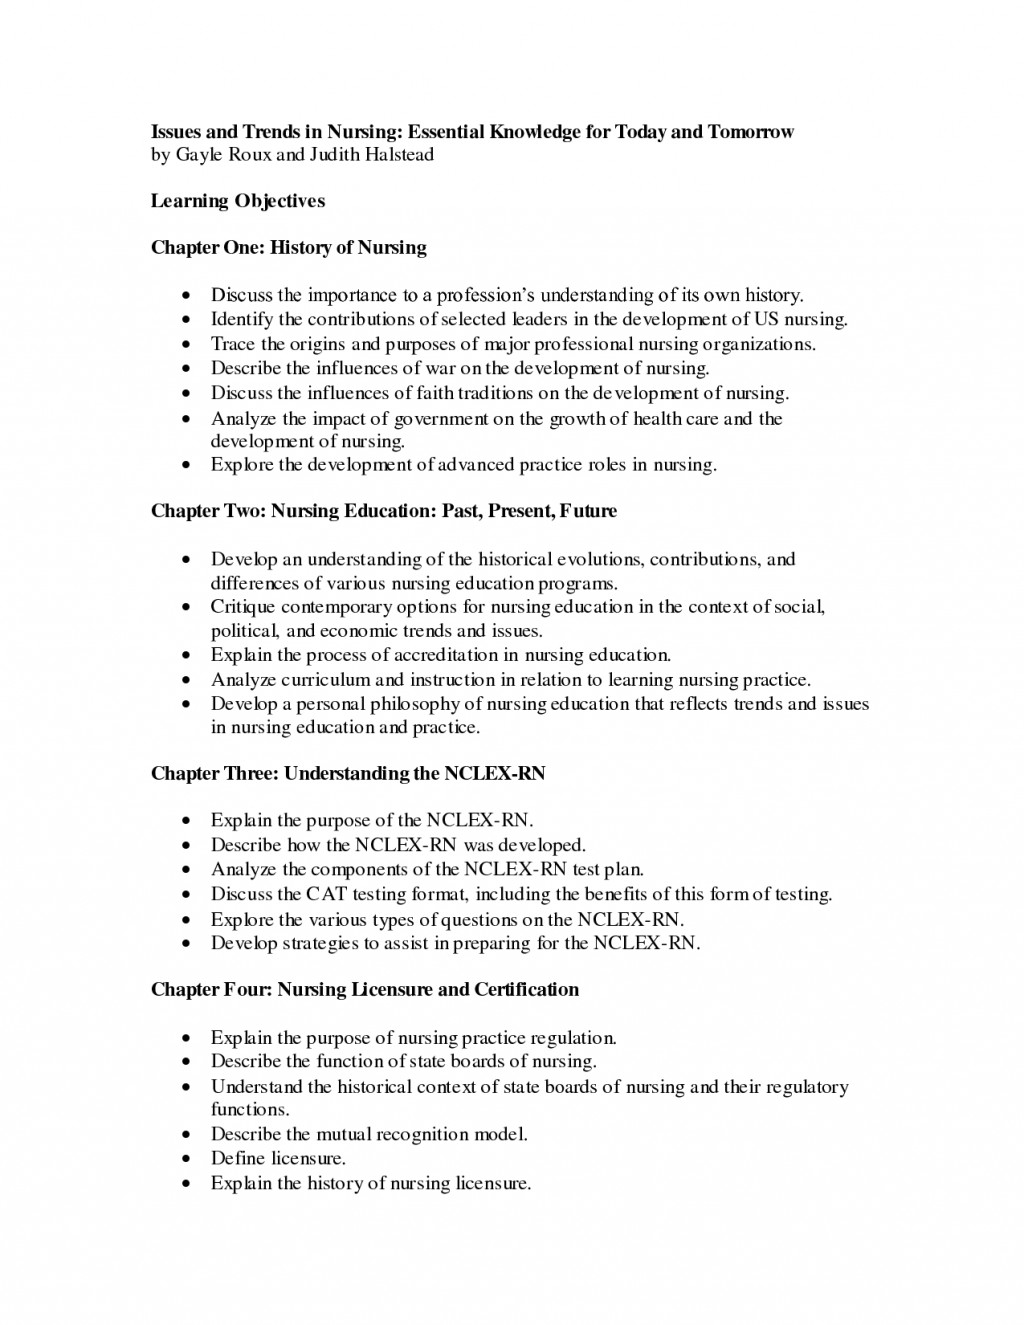 001 Research Paper Unusual Formatting Software In Chicago Style Format Apa Large